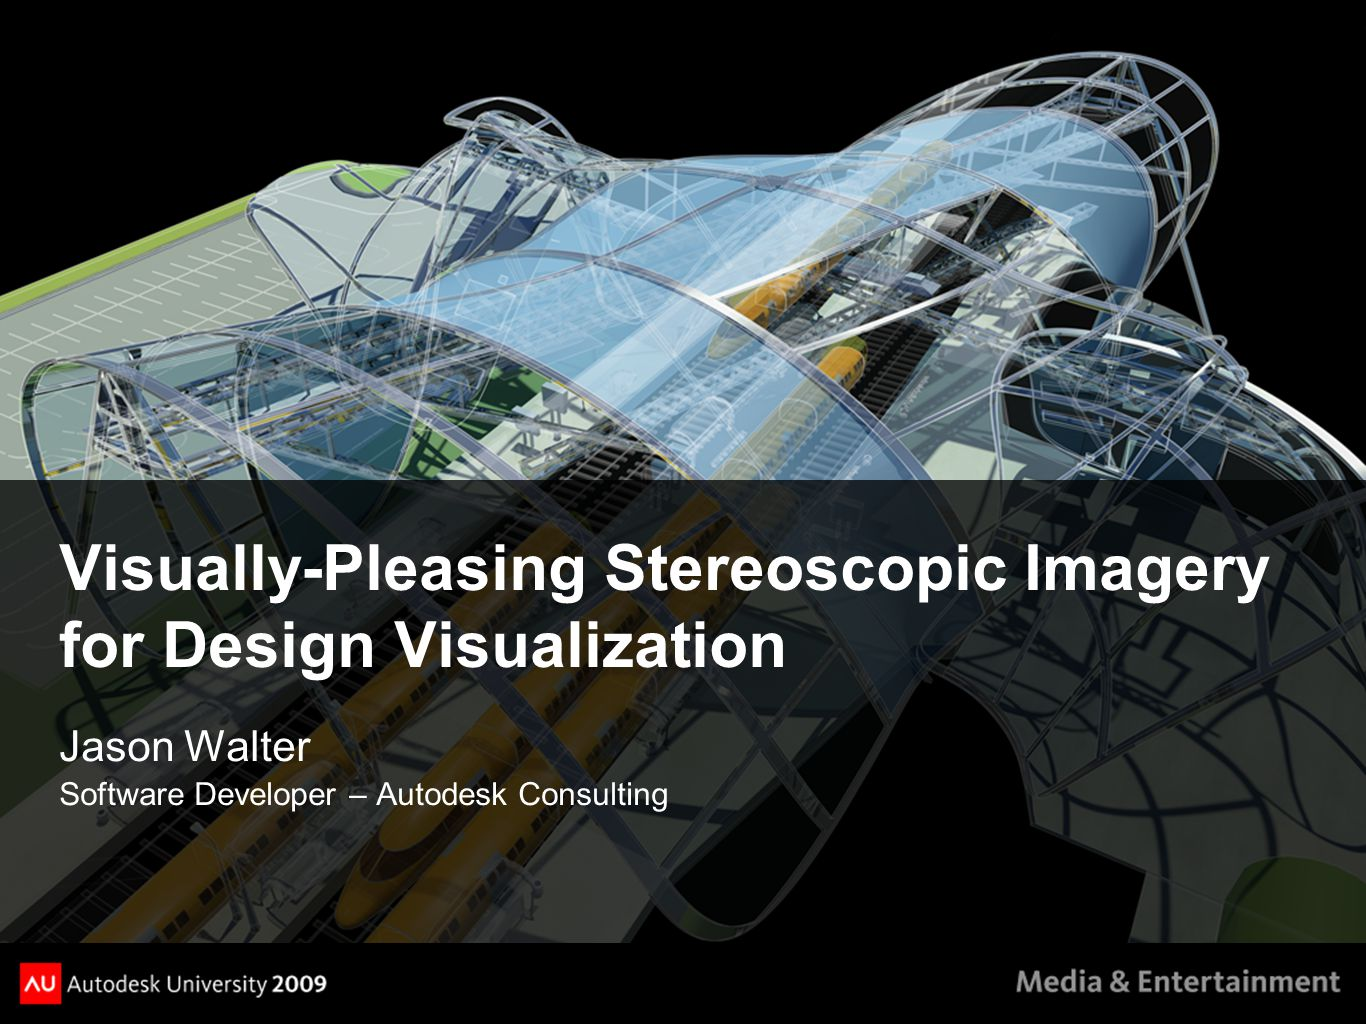 Visually-Pleasing Stereoscopic Imagery for Design Visualization Jason Walter Software Developer – Autodesk Consulting